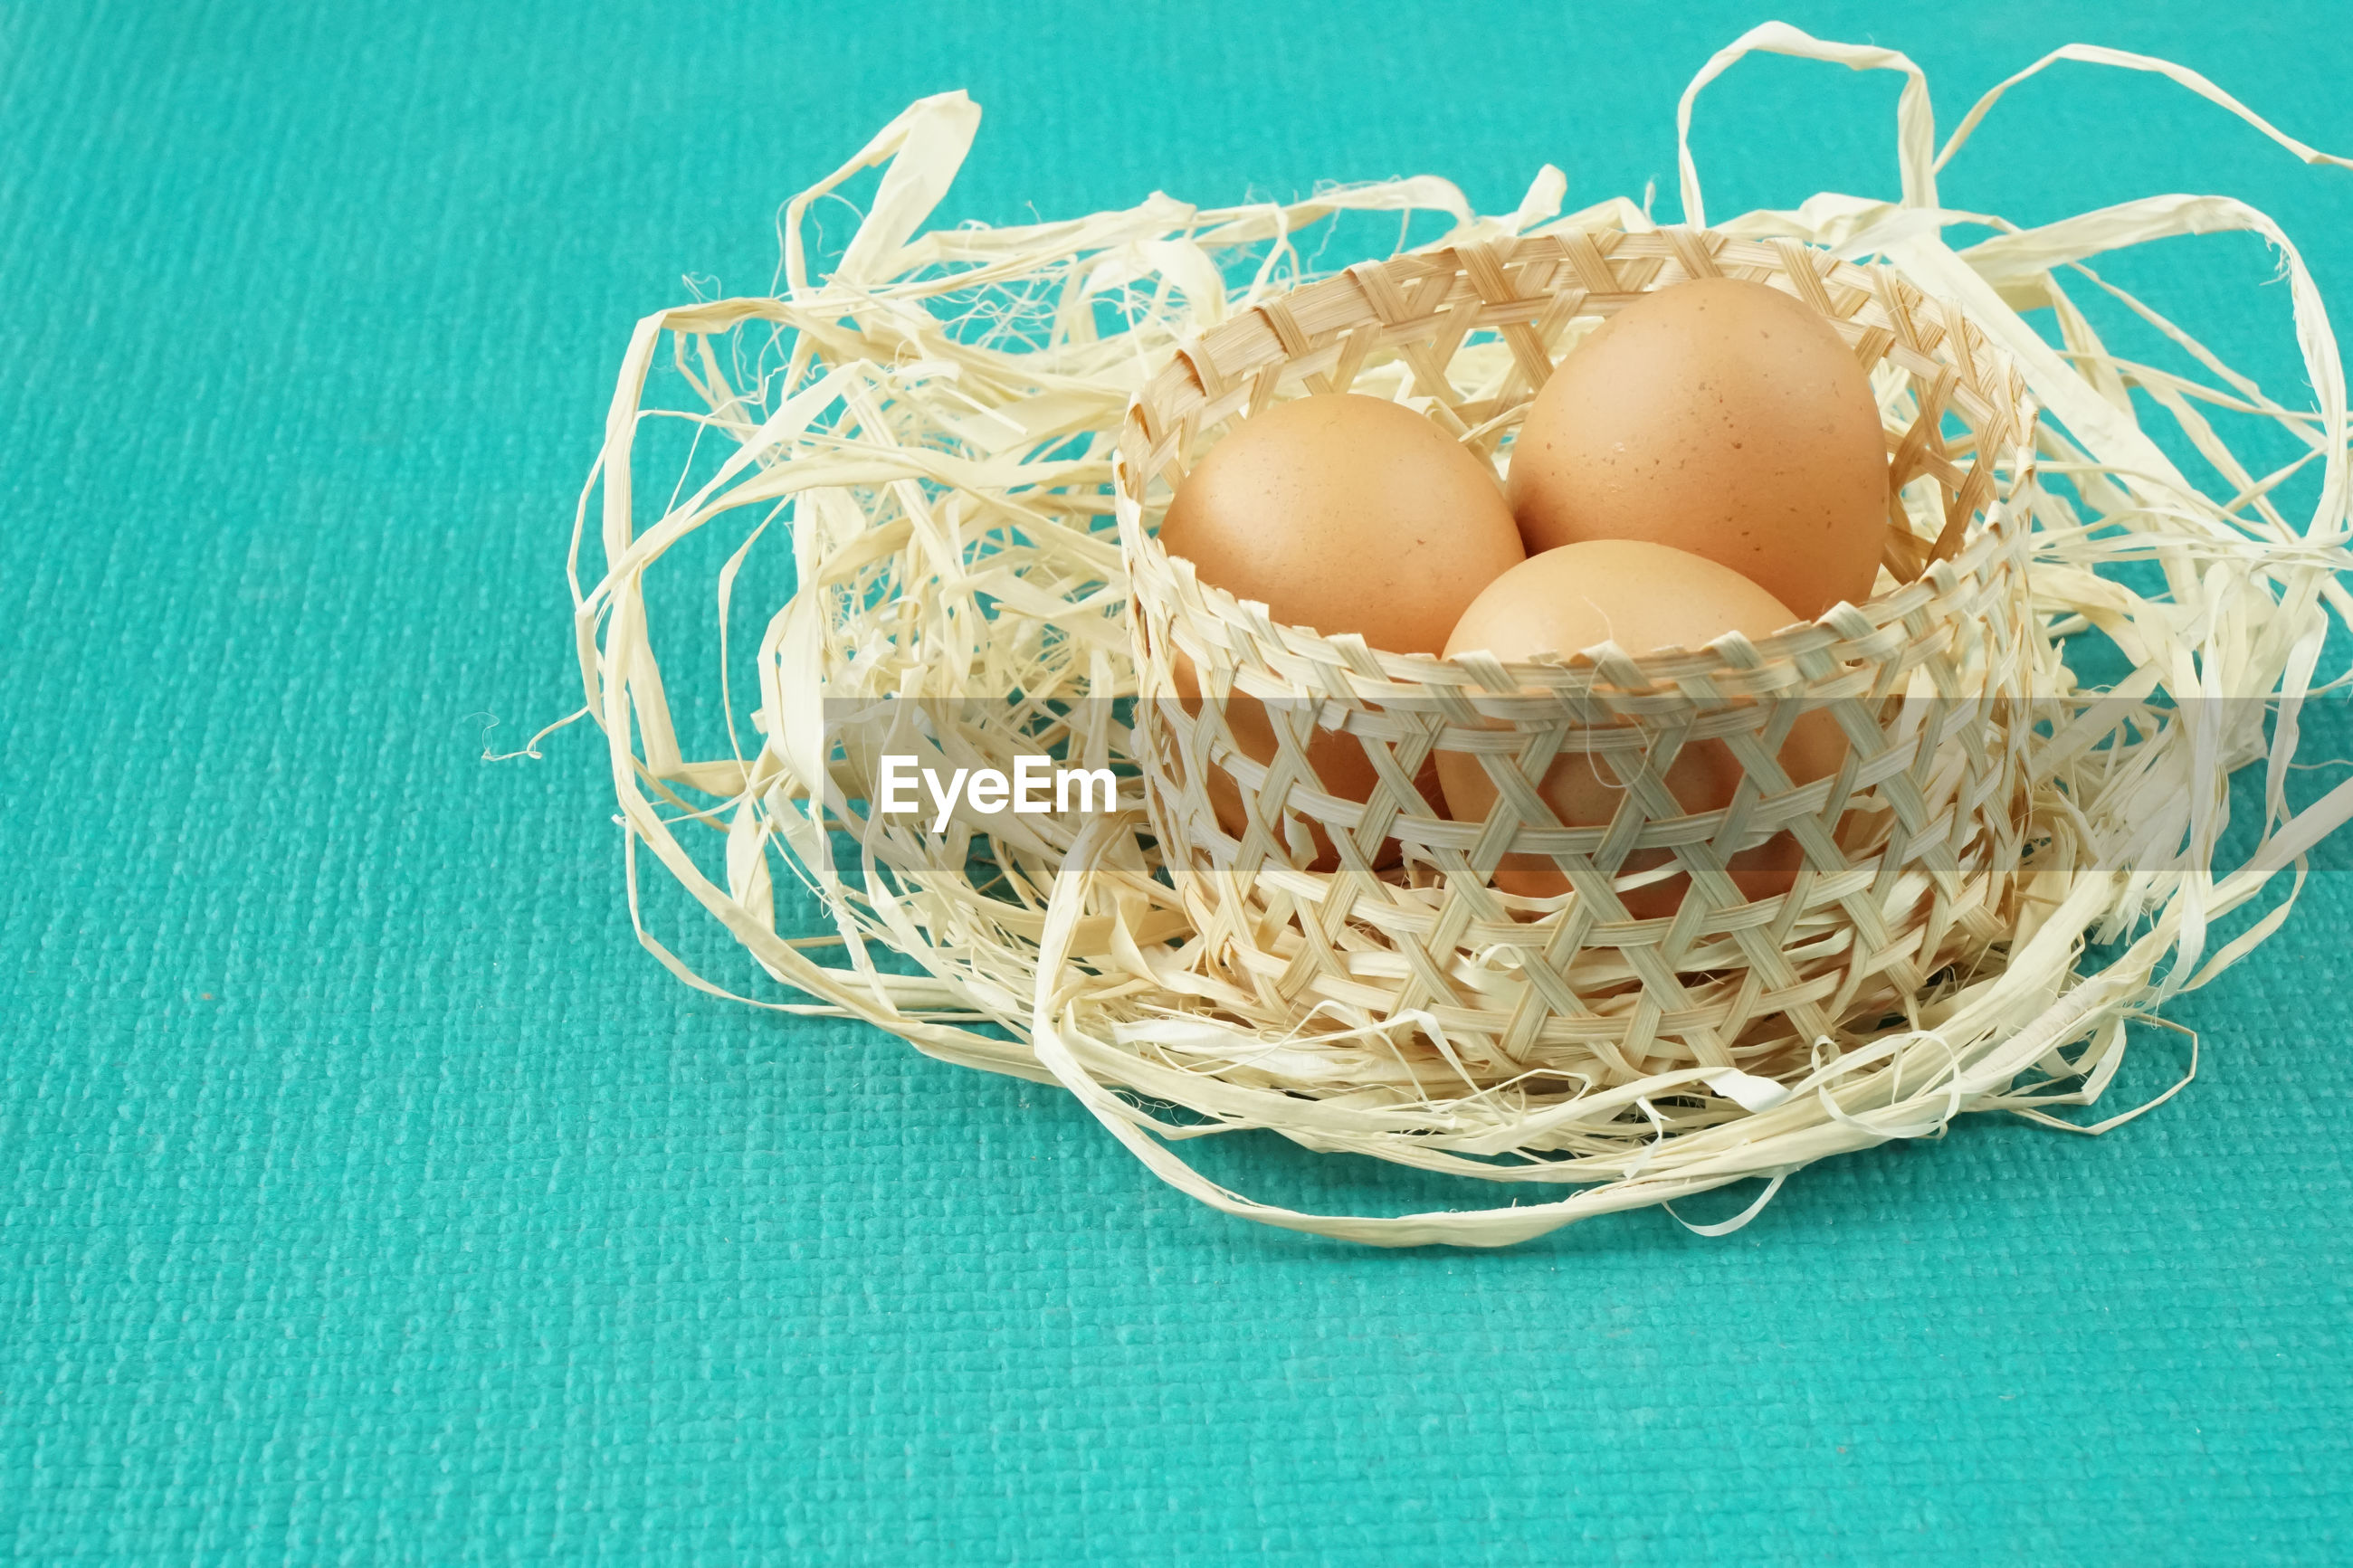 HIGH ANGLE VIEW OF EGGS IN BASKET ON BLUE TABLE